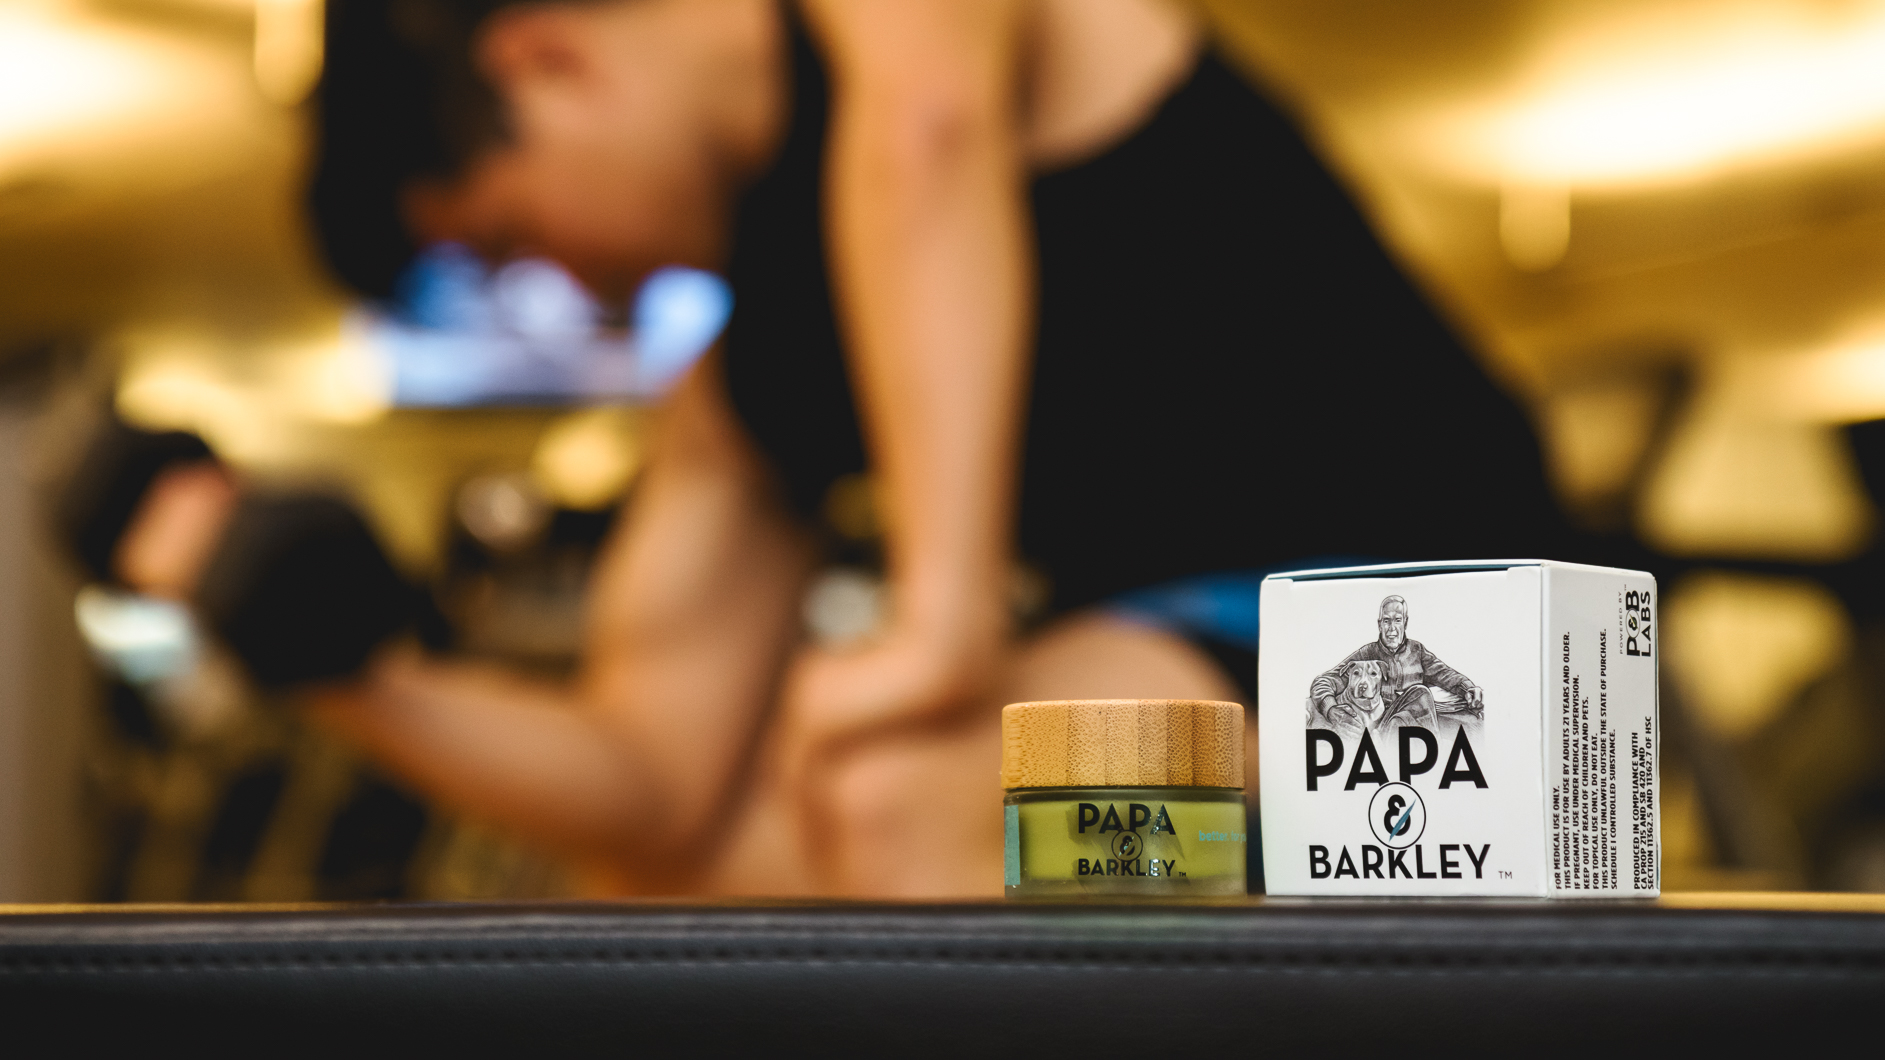 Close up image of Papa & Barkely Releaf Balm with a man lifting weights in the background.